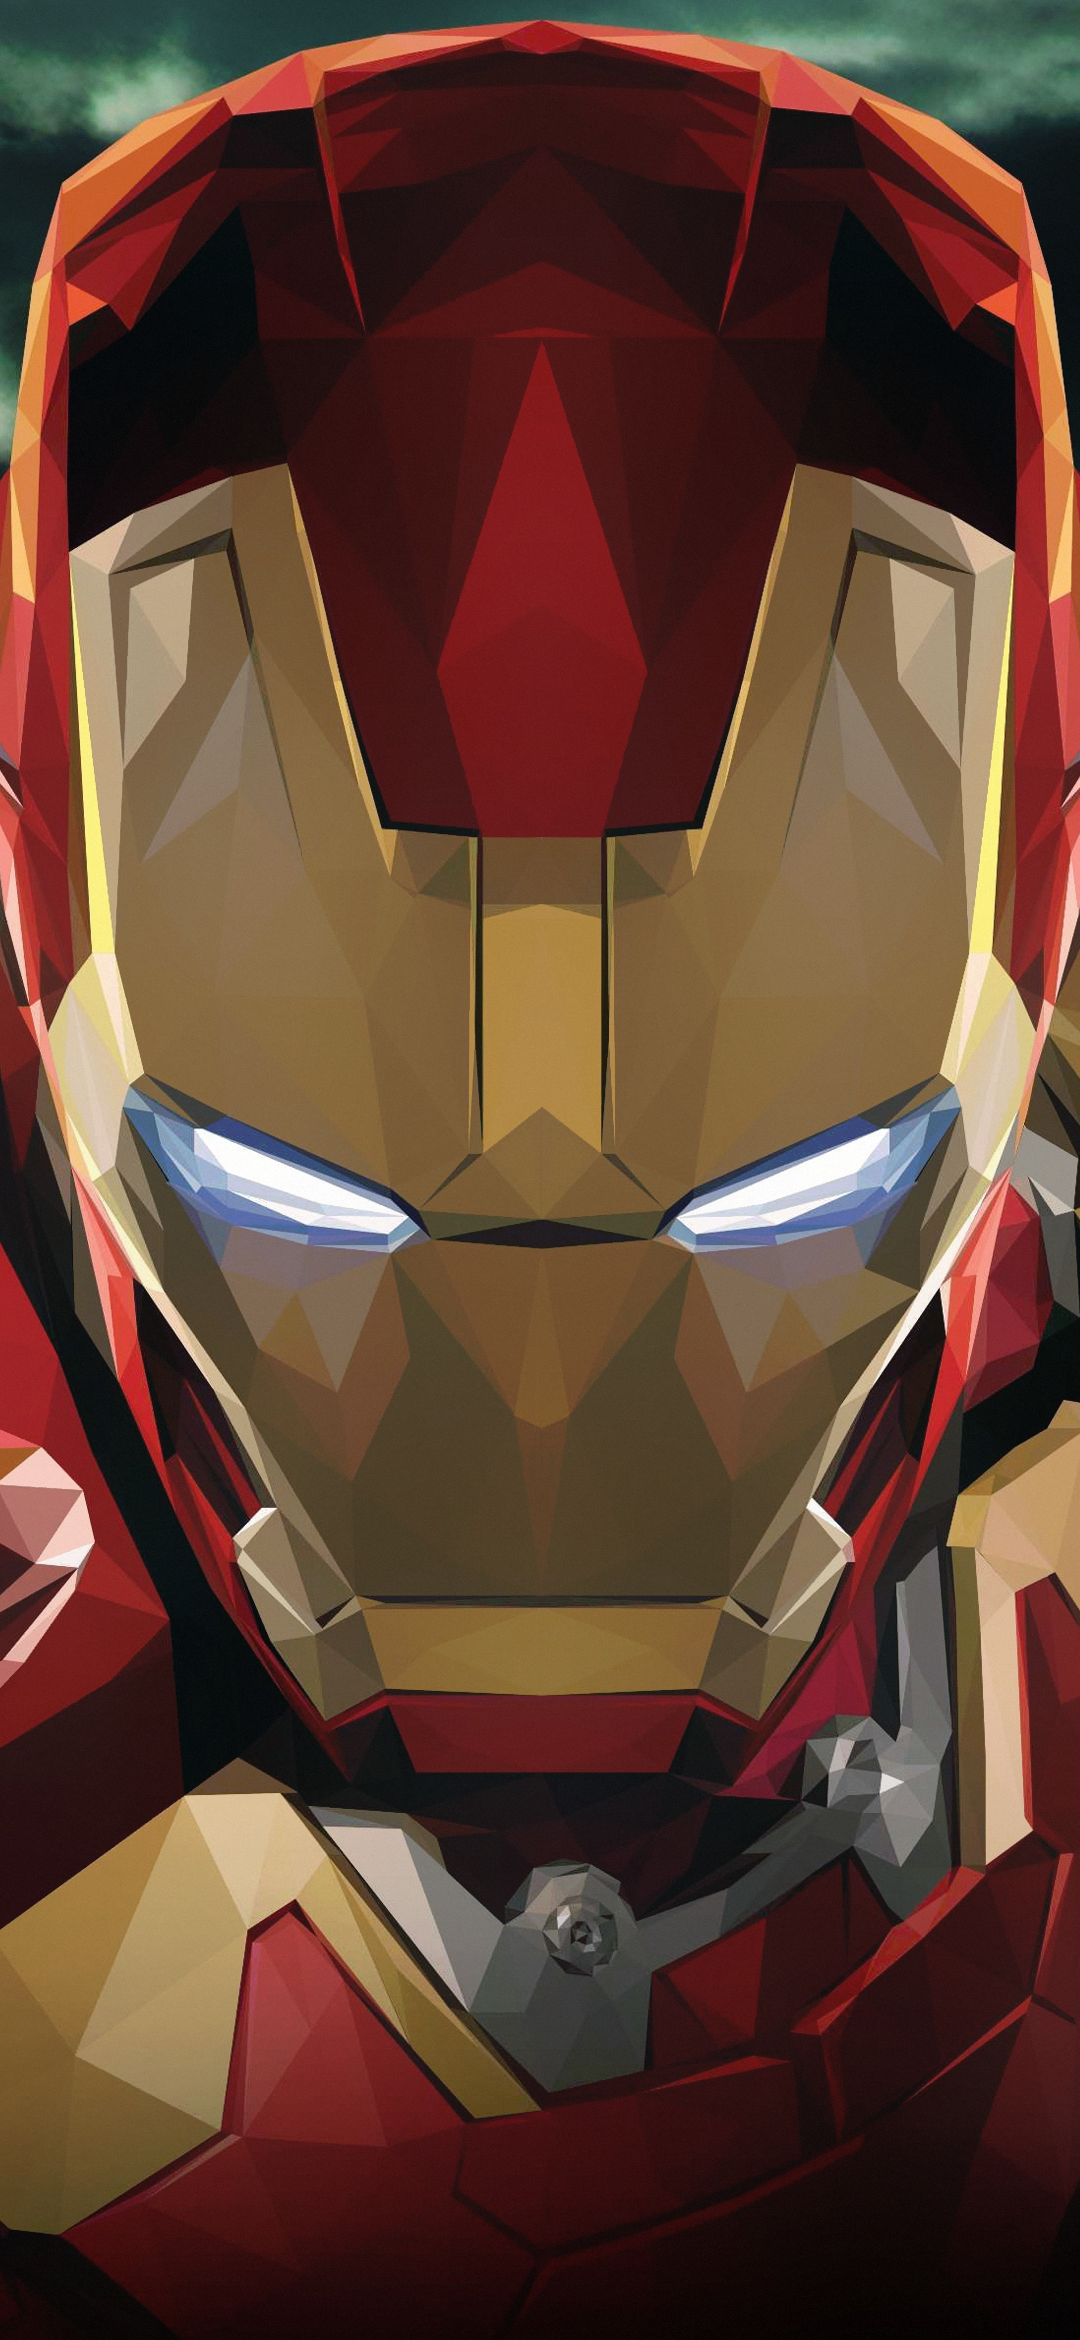 You Can Visit For More In 2020 Marvel Comics Wallpaper Iron Man Art Iron Man Wallpaper